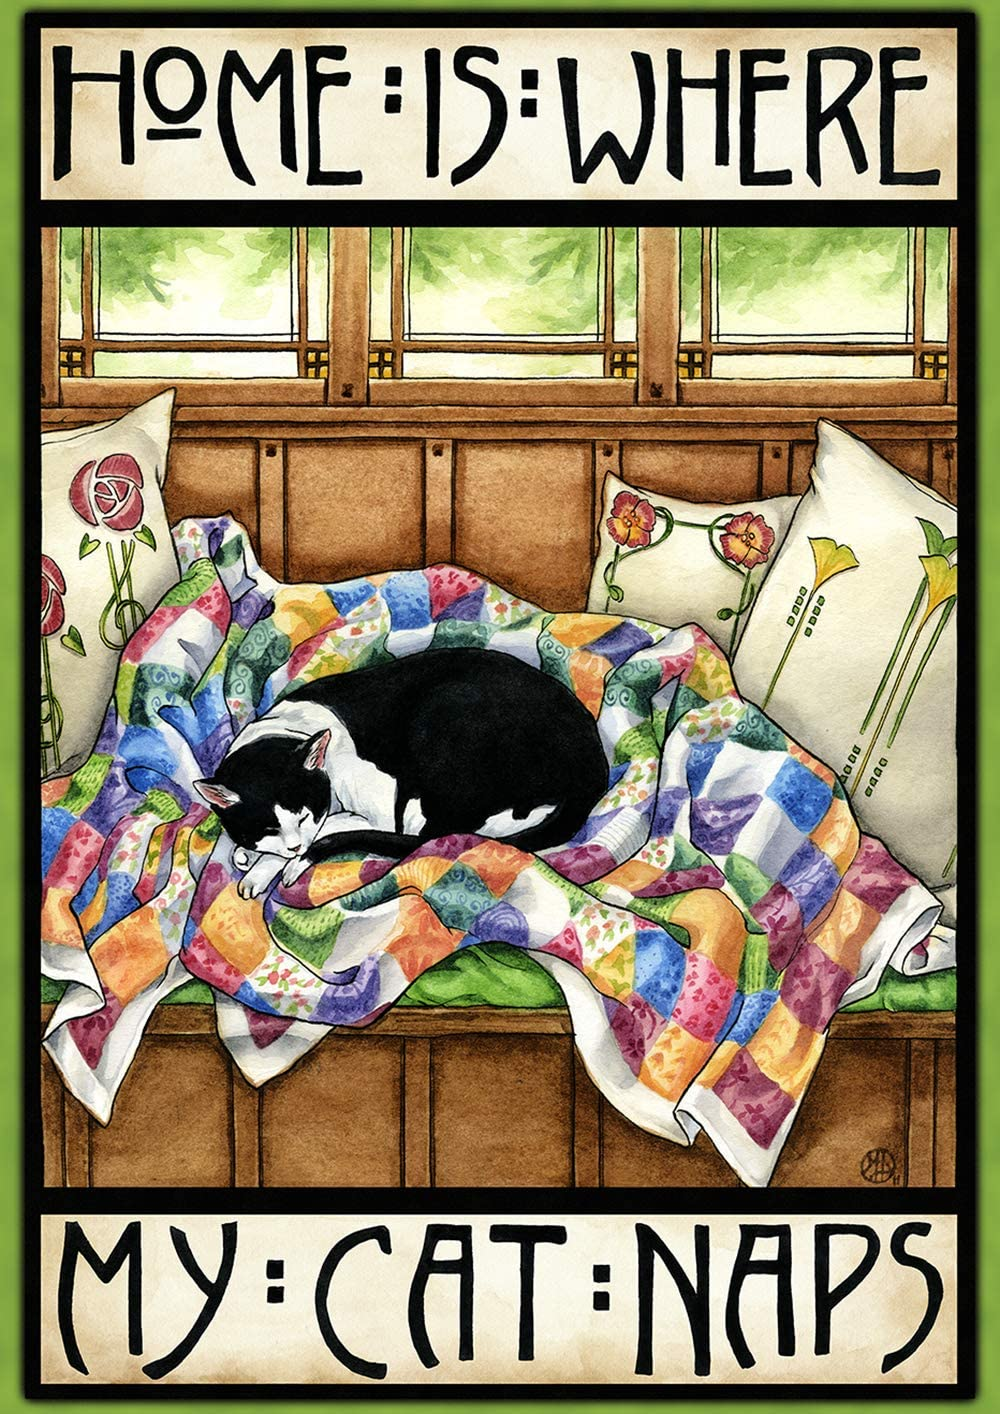 """Toland Home Garden 1112313 Home is Where My Cat Naps 12.5 x 18 Inch Decorative, (12.5"""" x 18""""), Double Sided Garden Flag"""